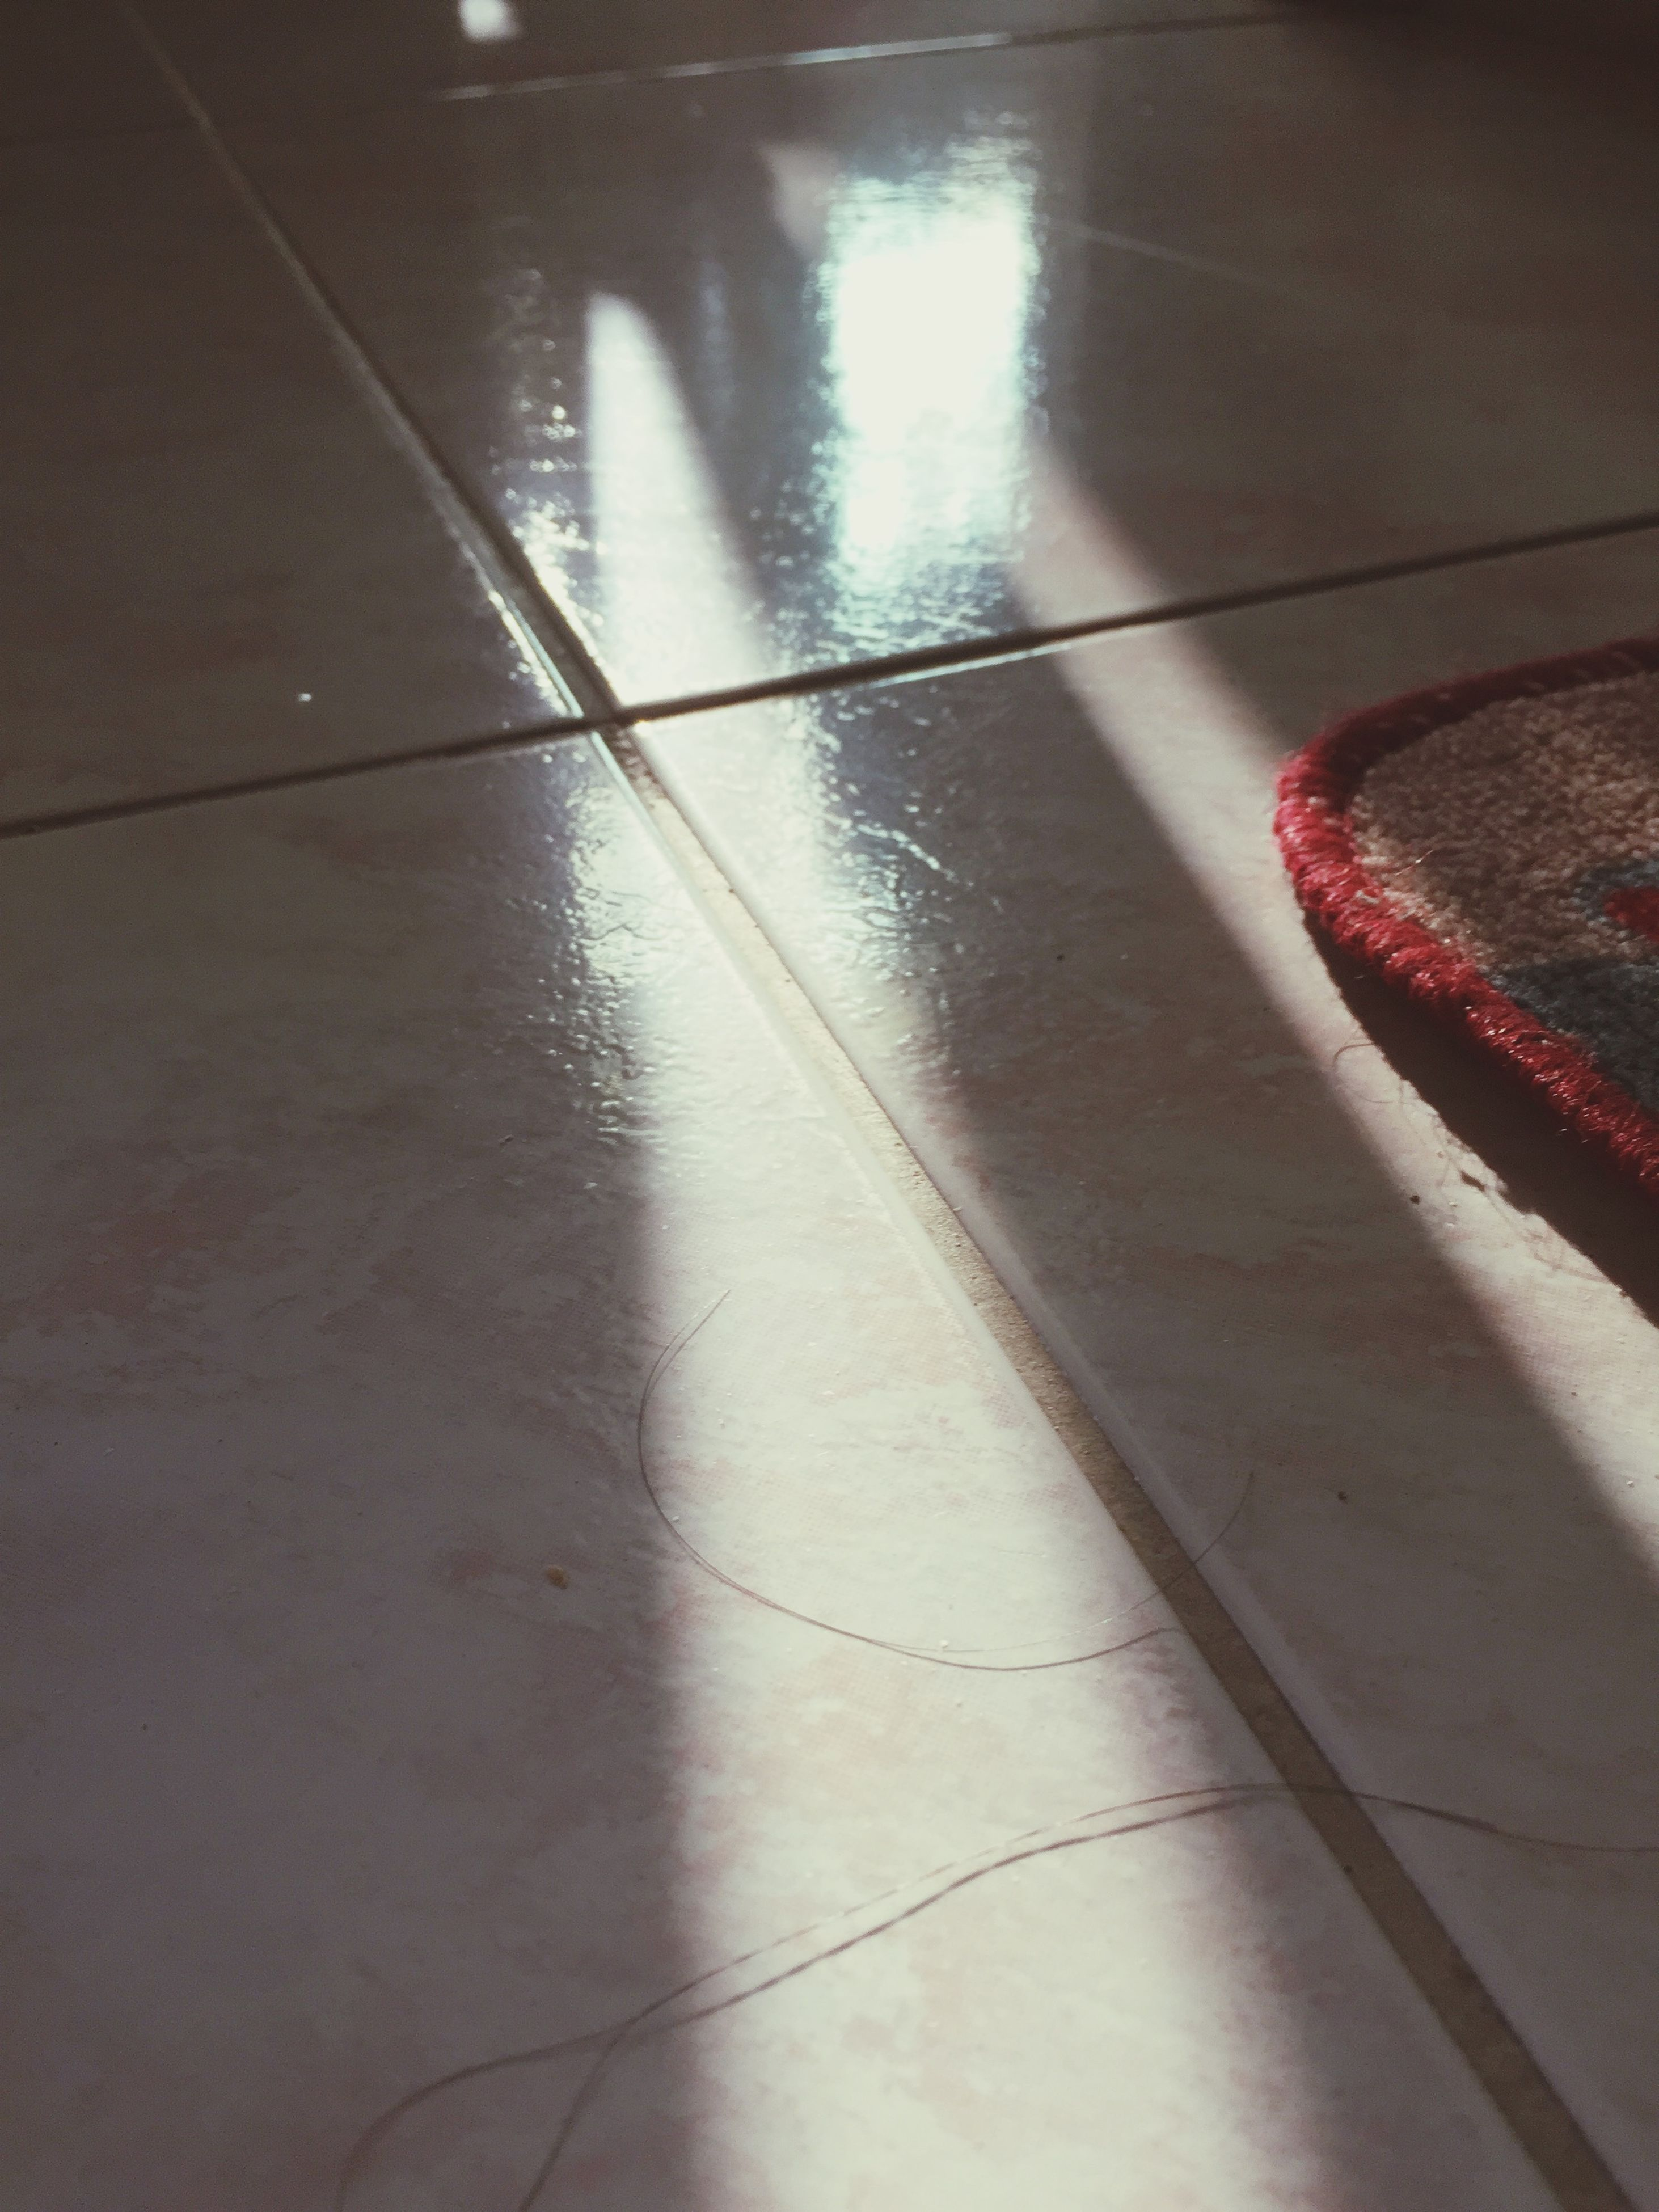 indoors, tiled floor, high angle view, flooring, illuminated, shadow, tile, red, wall - building feature, pattern, sunlight, no people, floor, reflection, empty, steps, built structure, architecture, absence, steps and staircases